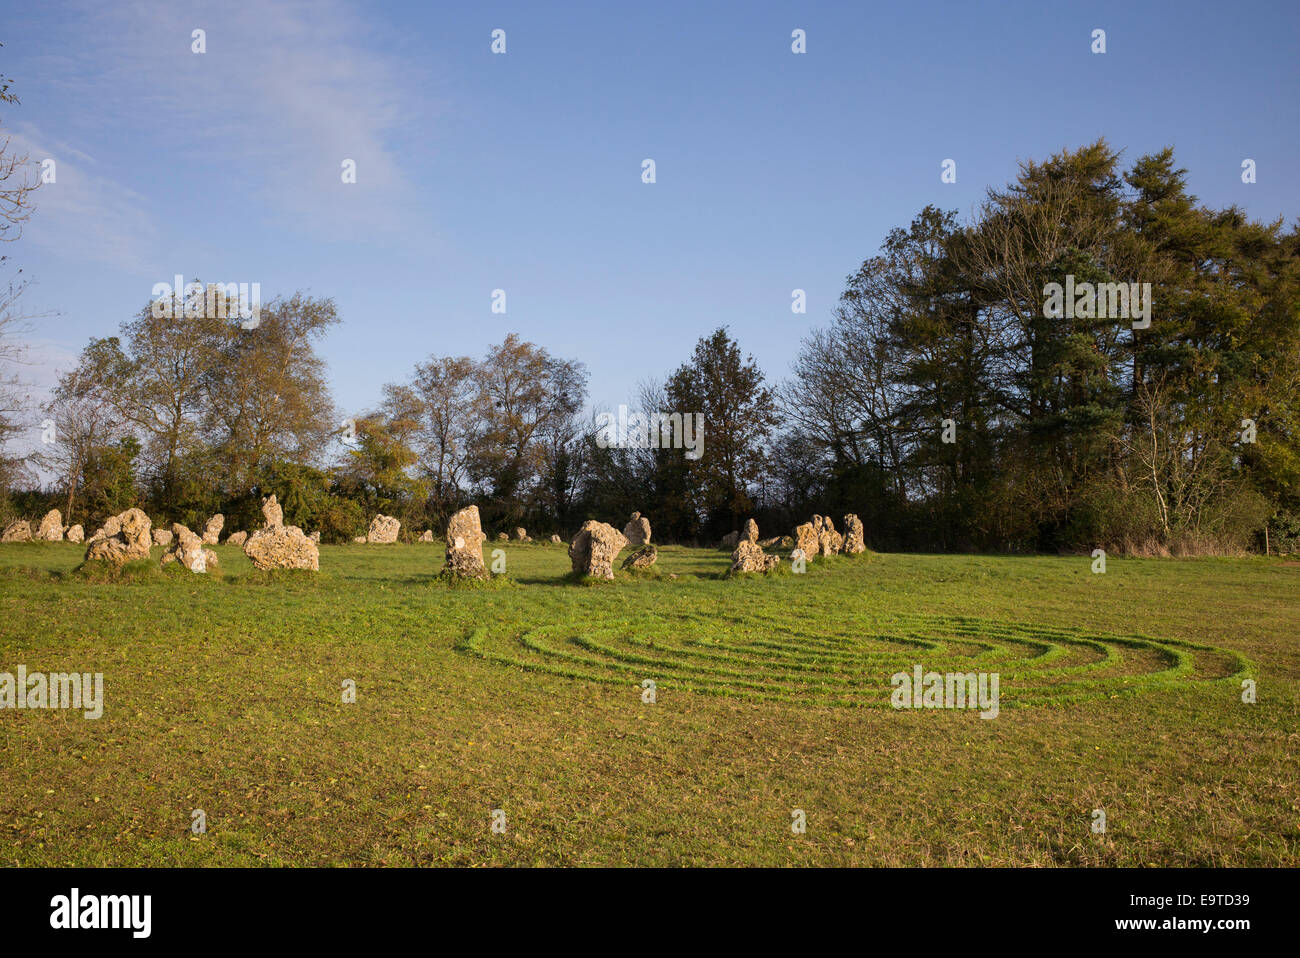 Labyrinth symbol planted with grasses at The Rollright stones, Oxfordshire, England. - Stock Image